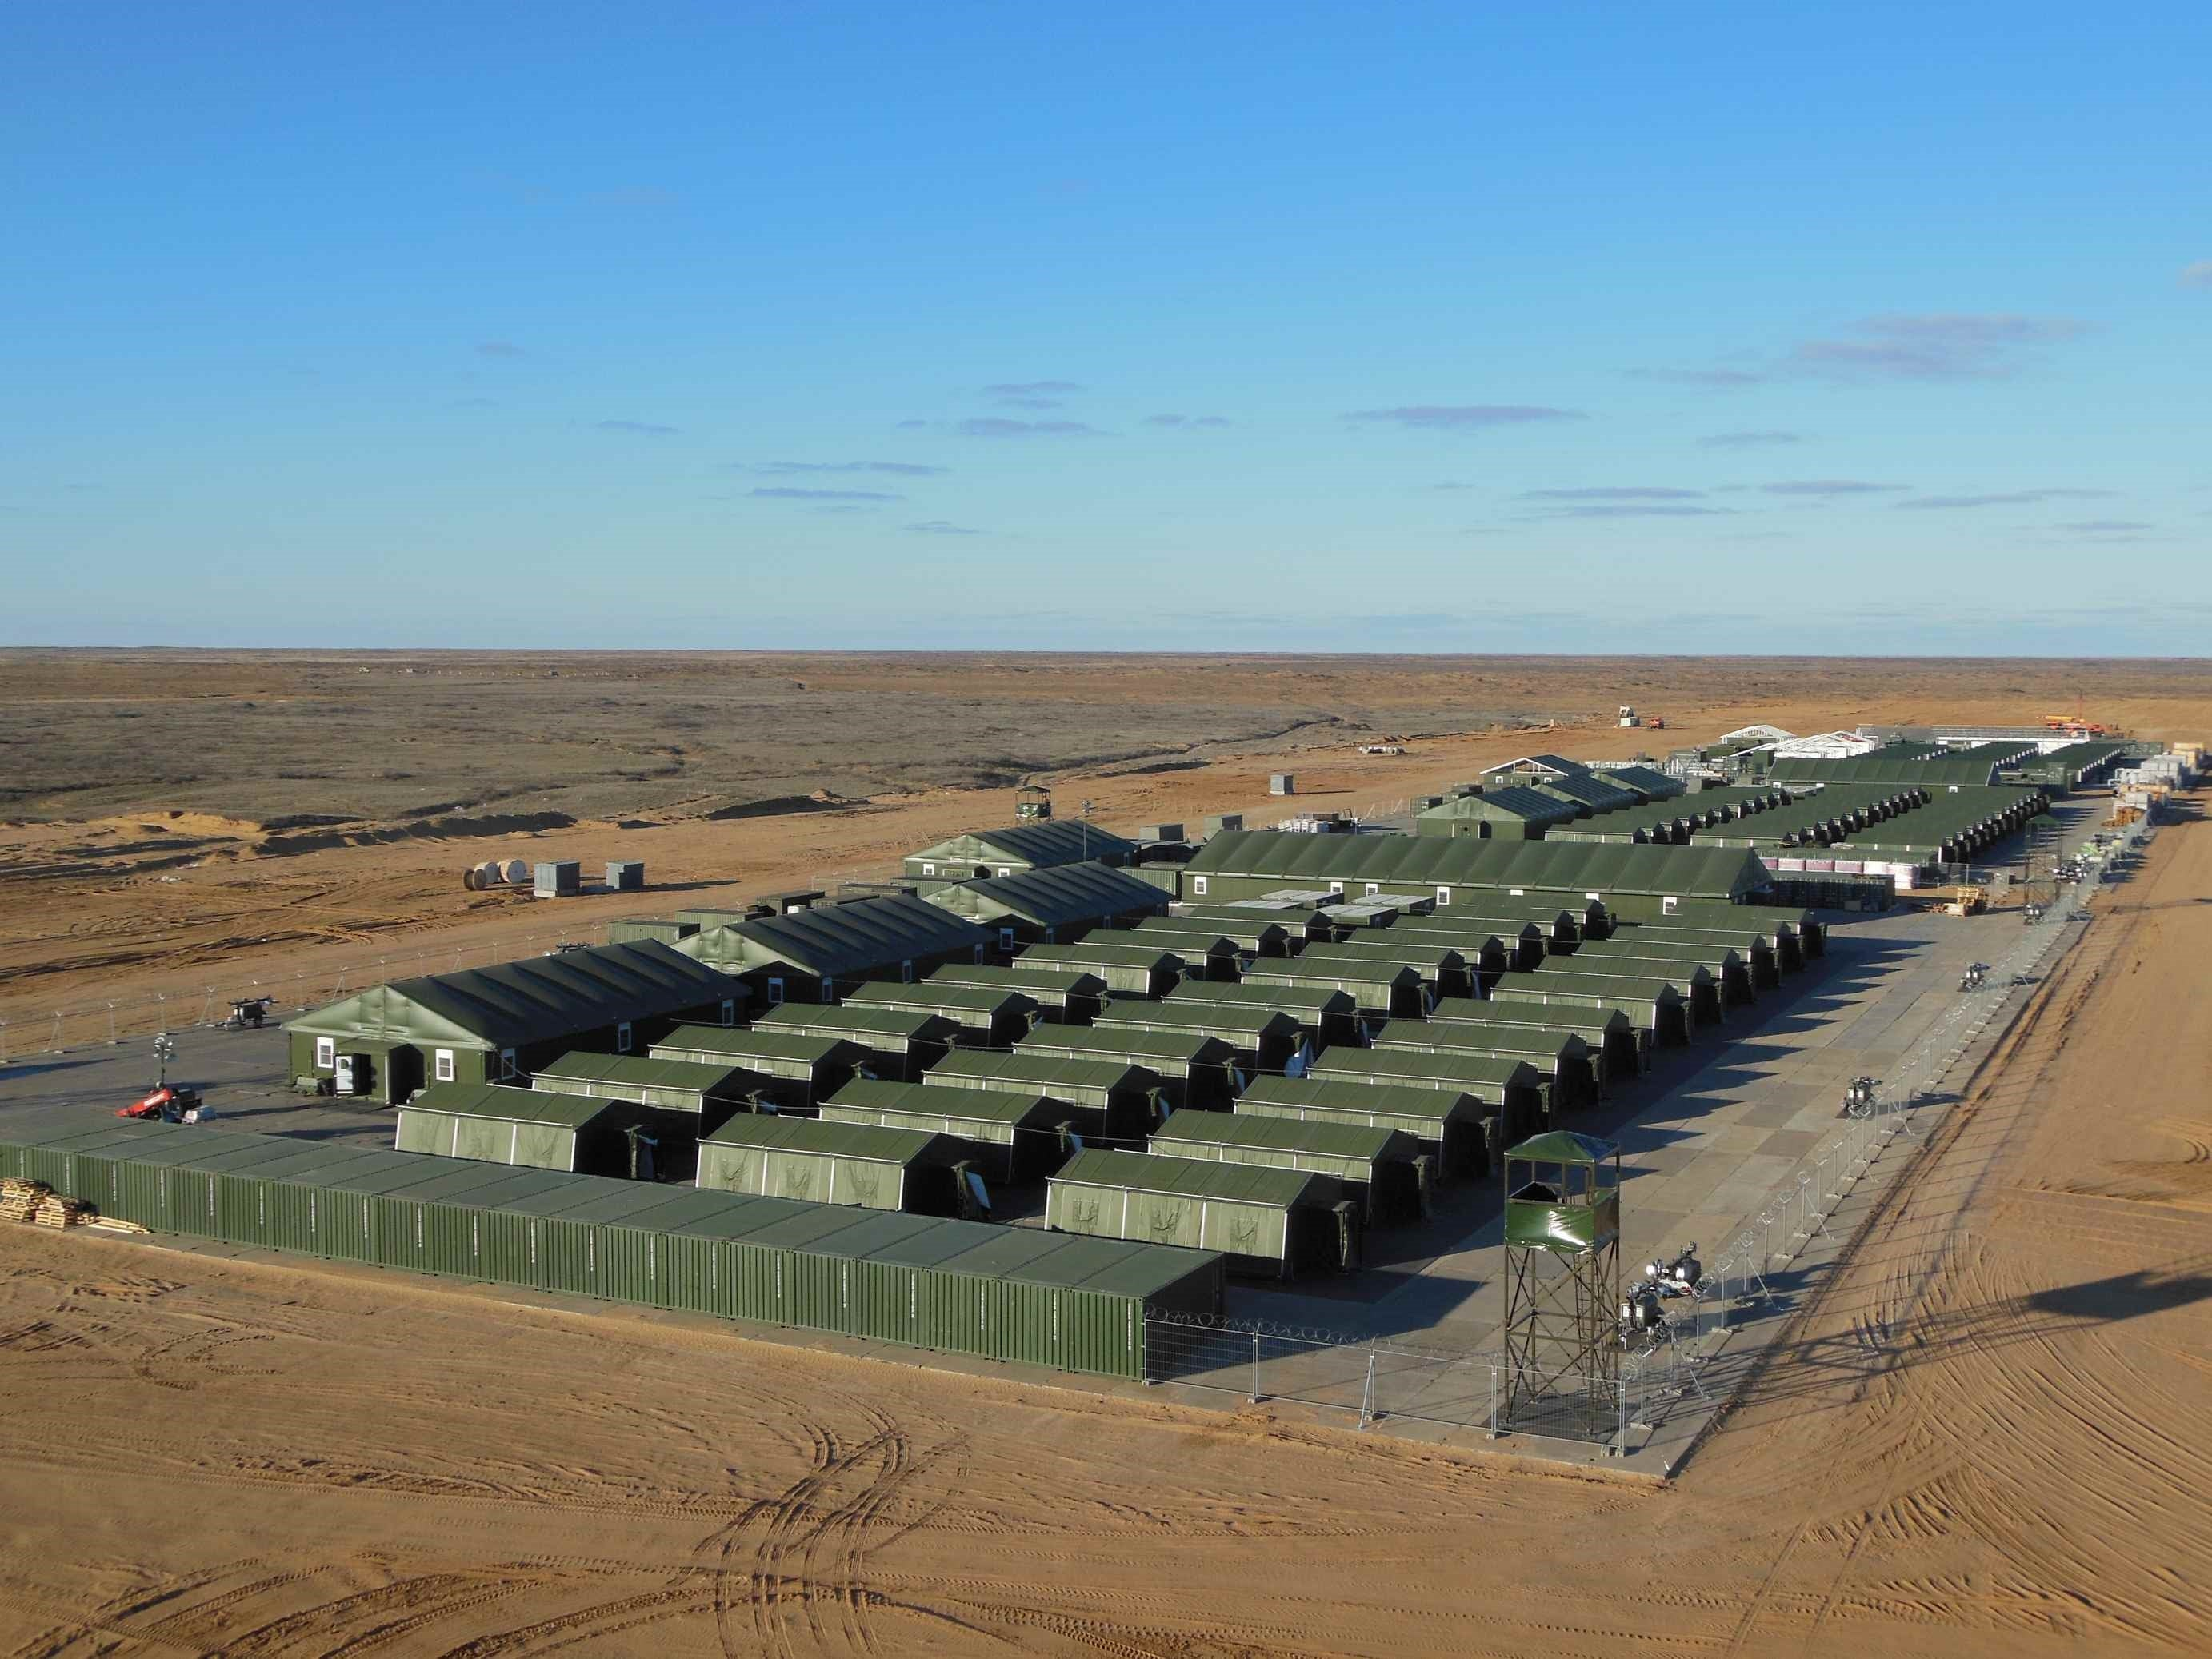 camp accommodation and operational 2